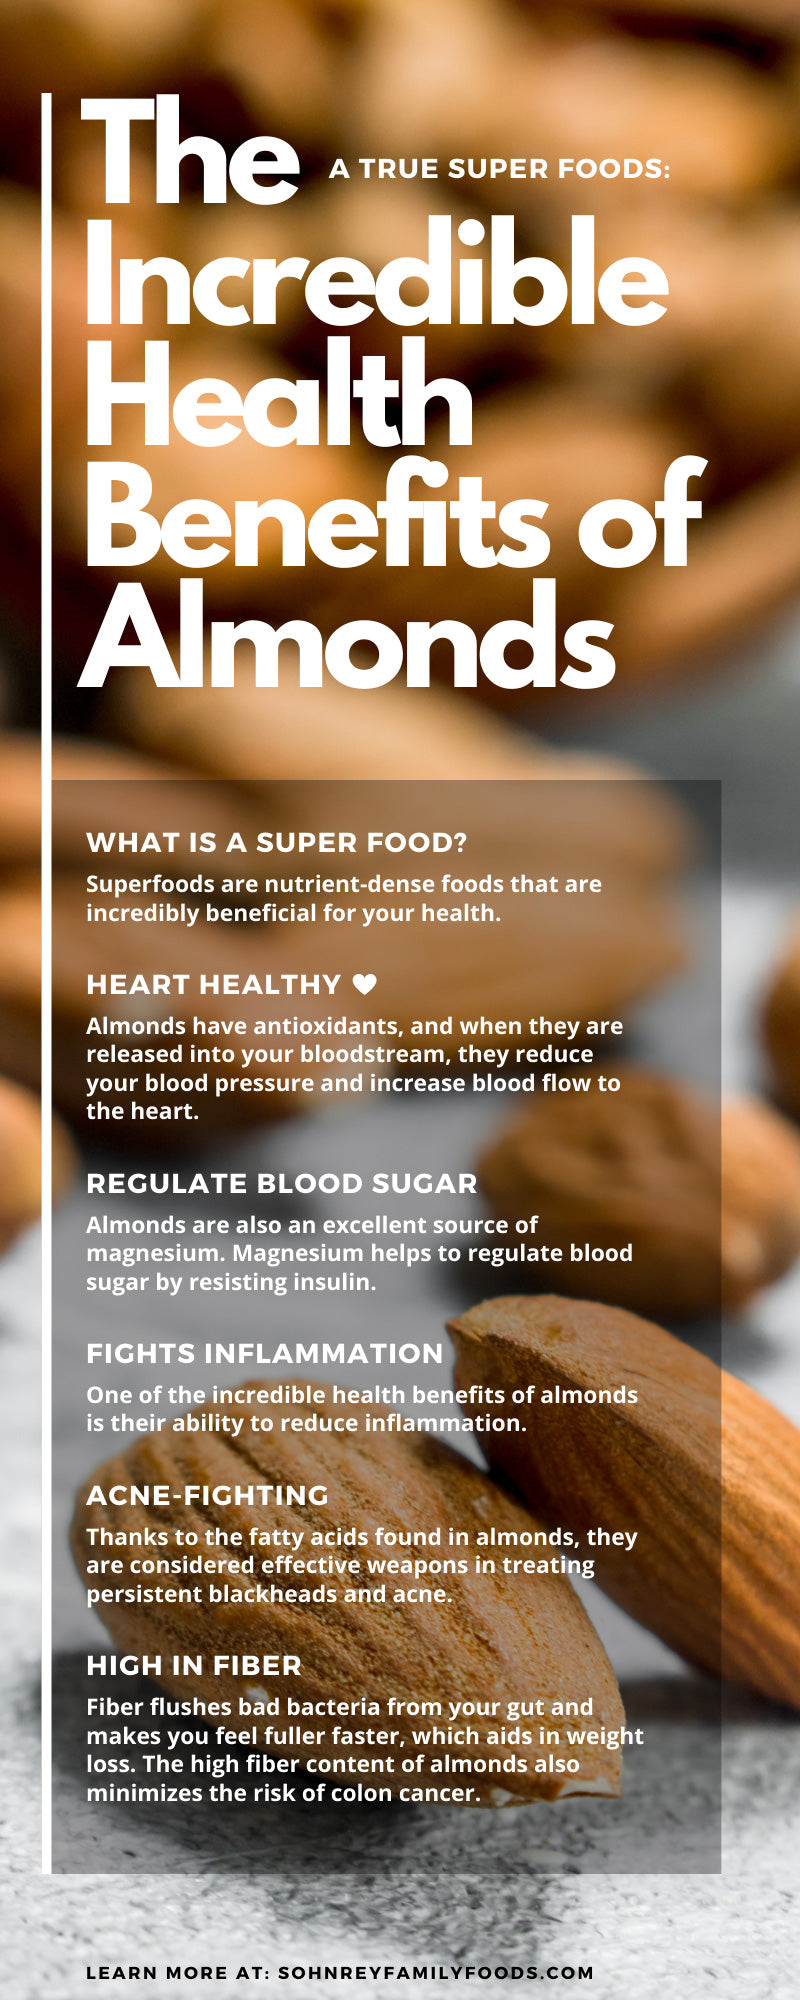 A True Super Foods: The Incredible Health Benefits of Almonds